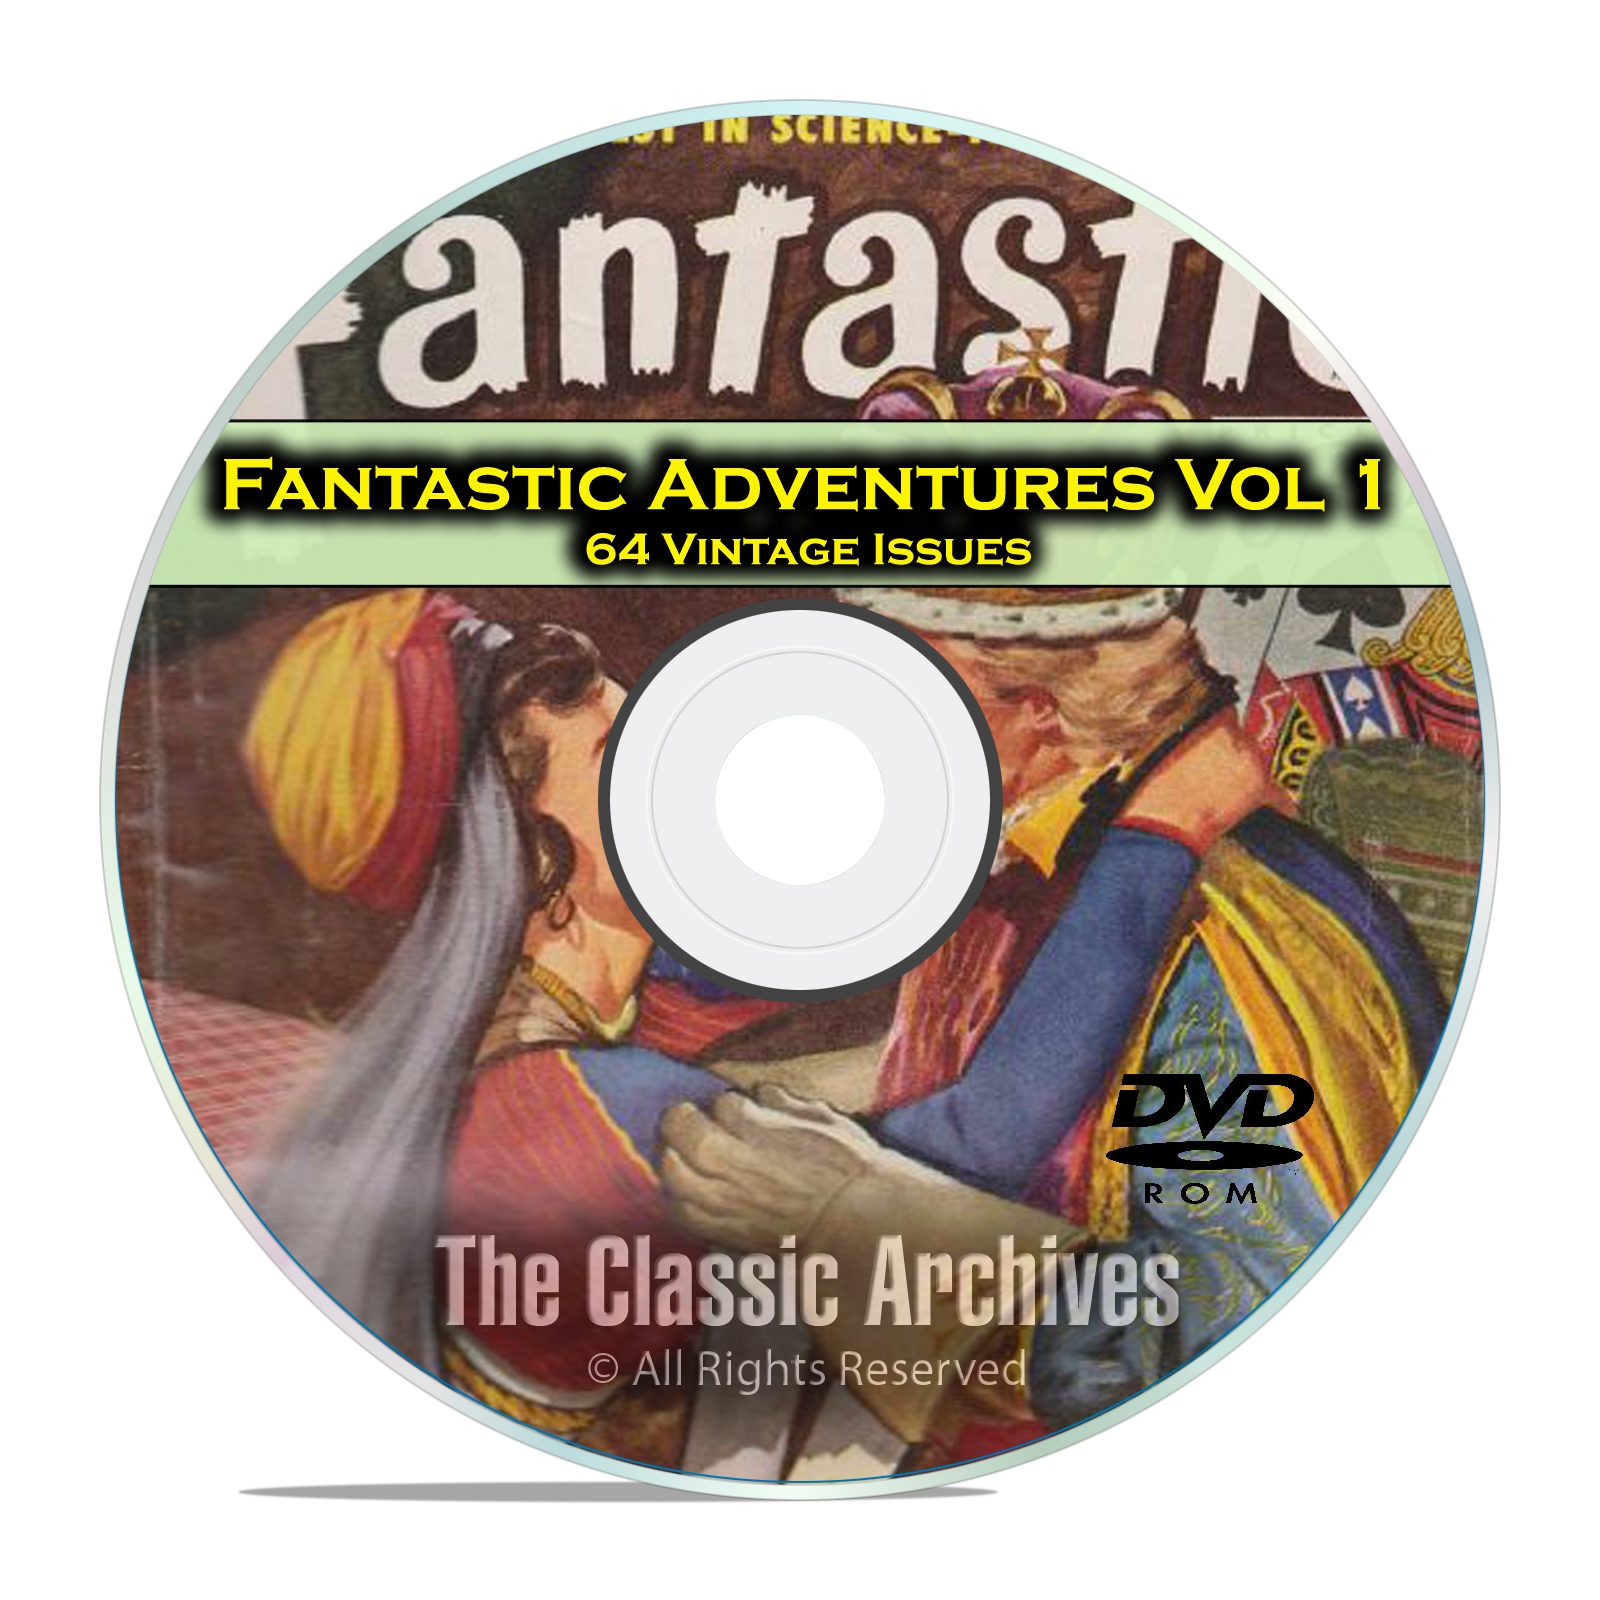 Fantastic Adventures Vol 1, 64 Vintage Pulp Magazine Golden Age Fiction DVD